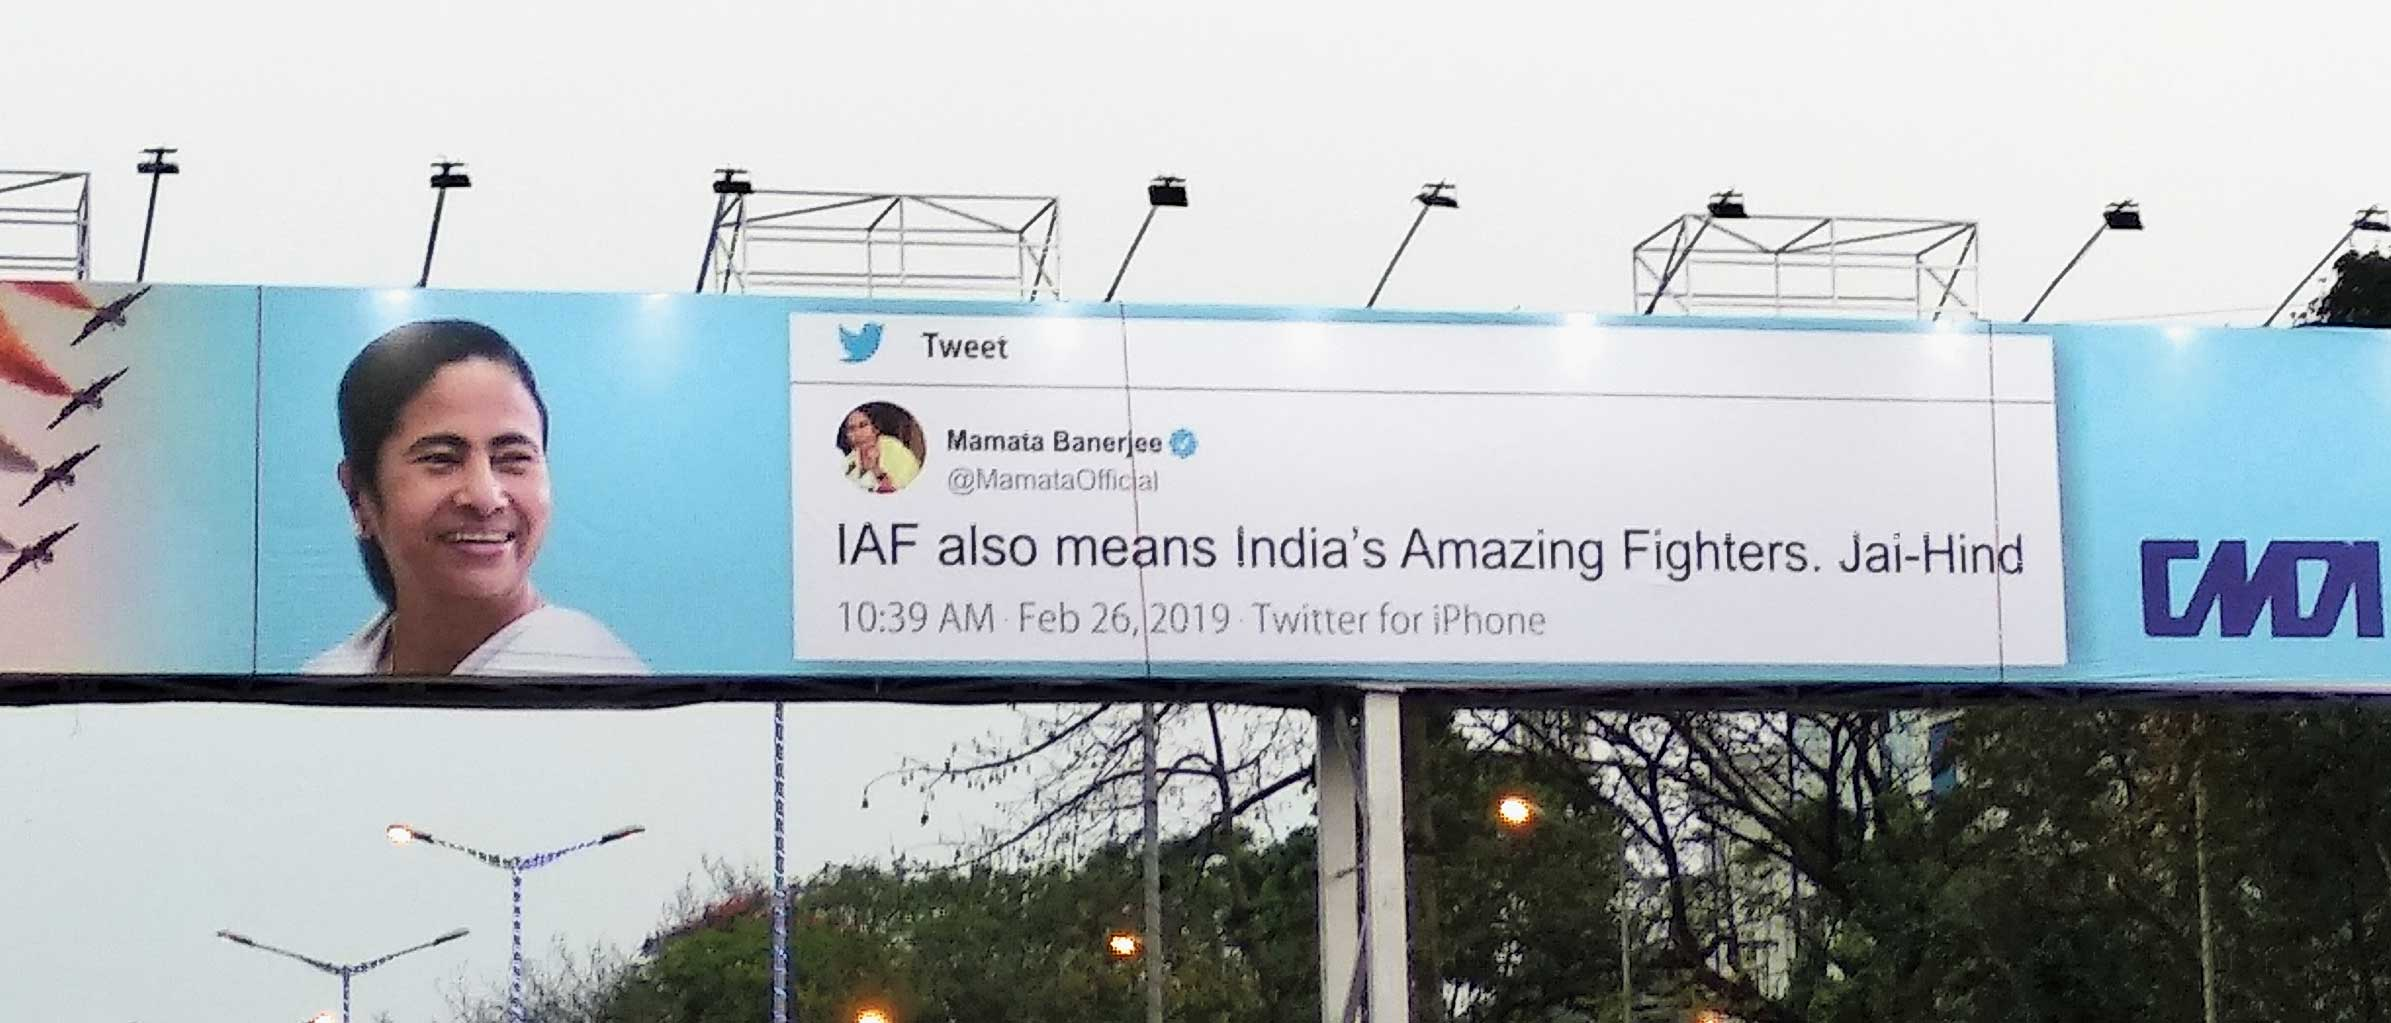 A hoarding  near Nicco Park in Calcutta with a screenshot of Mamata Banerjee's tweet hailing the IAF as 'India's Amazing Fighters'.